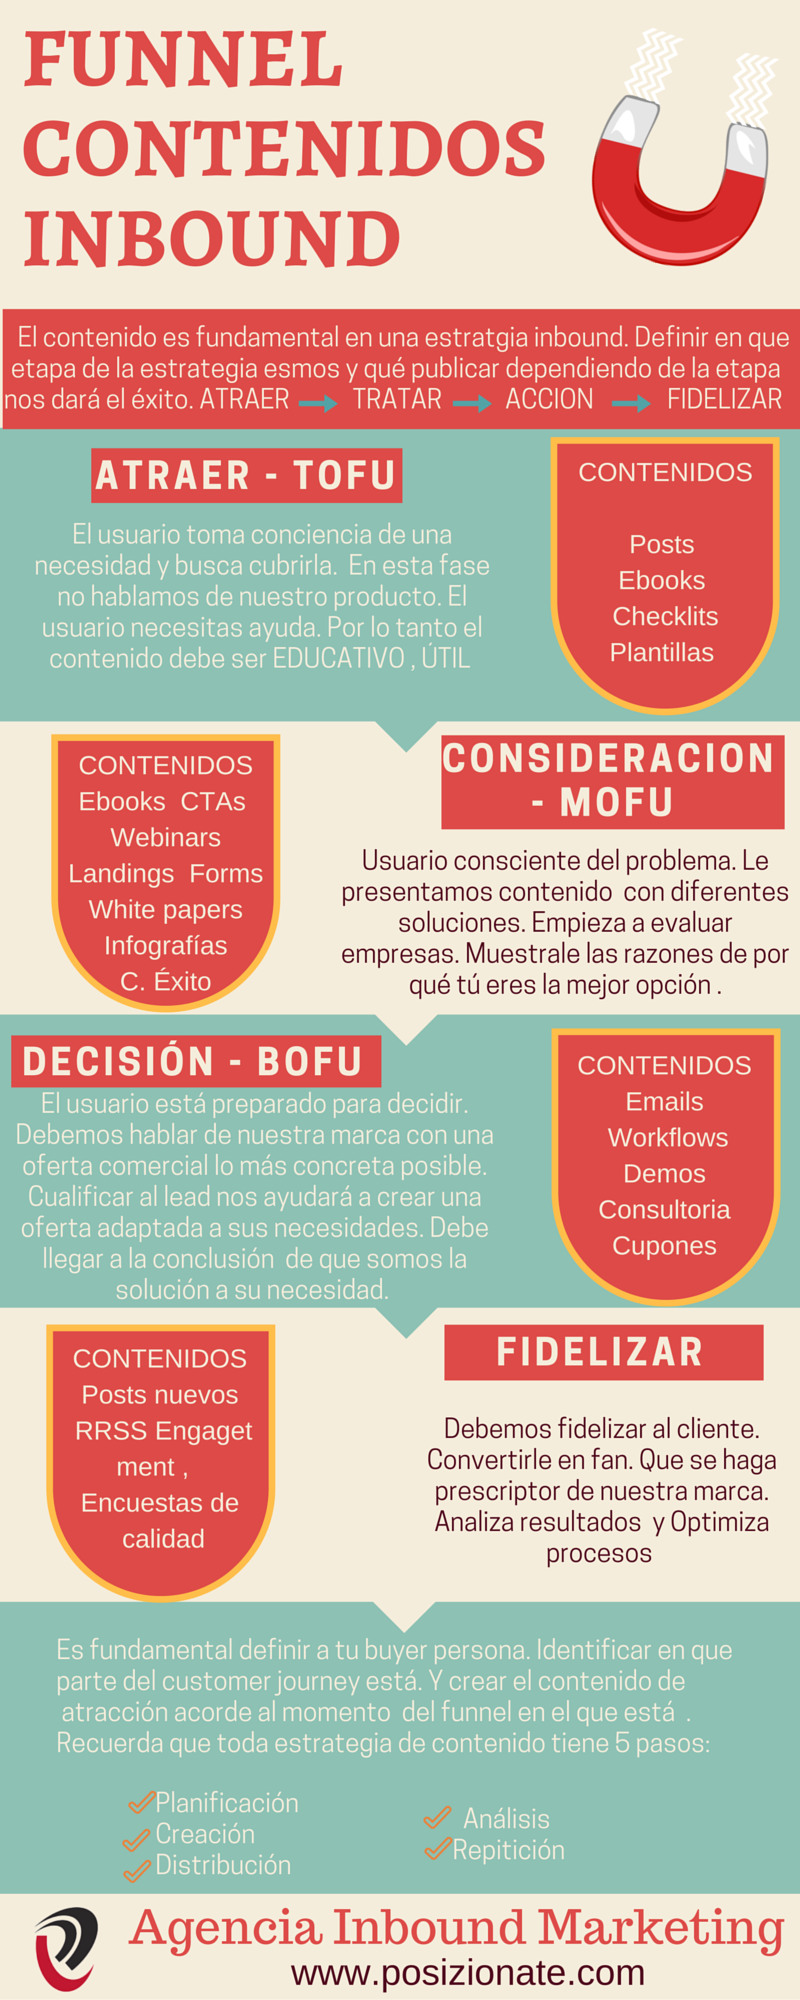 Funnel contenidos inbound Marketing